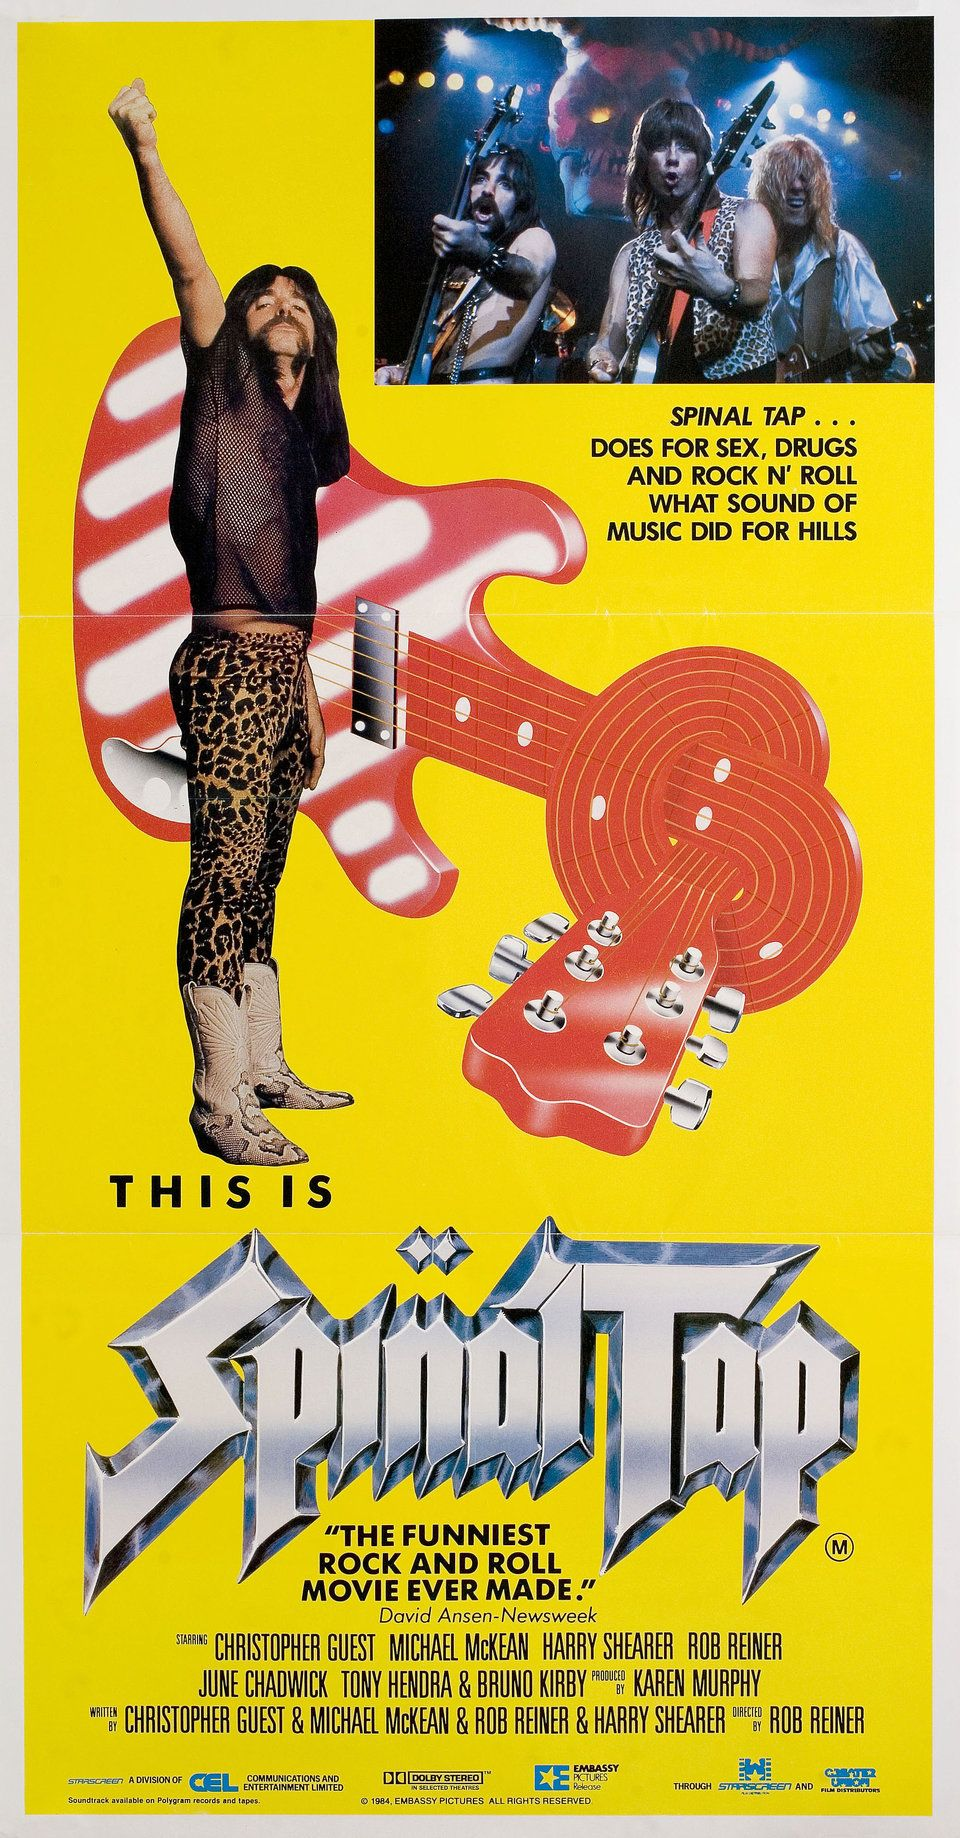 Image result for this is spinal tap sound of music does for hills